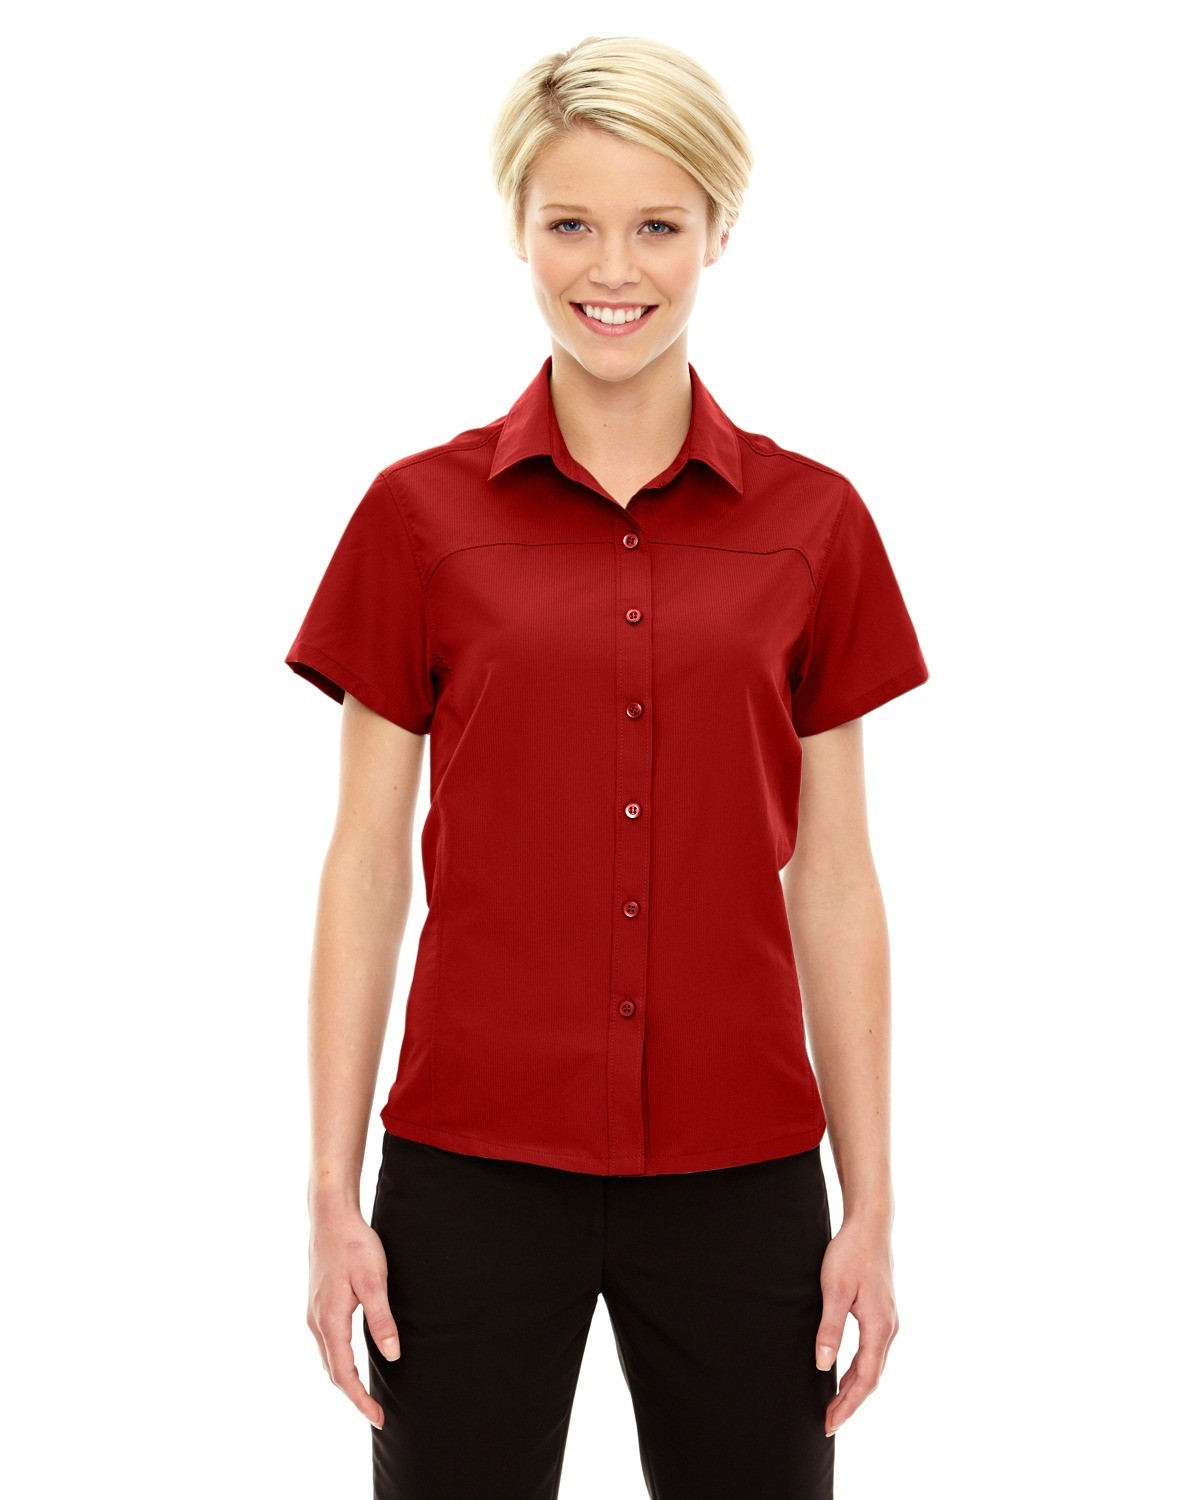 Ladies' Charge Recycled Polyester Performance Short-Sleeve Shirt